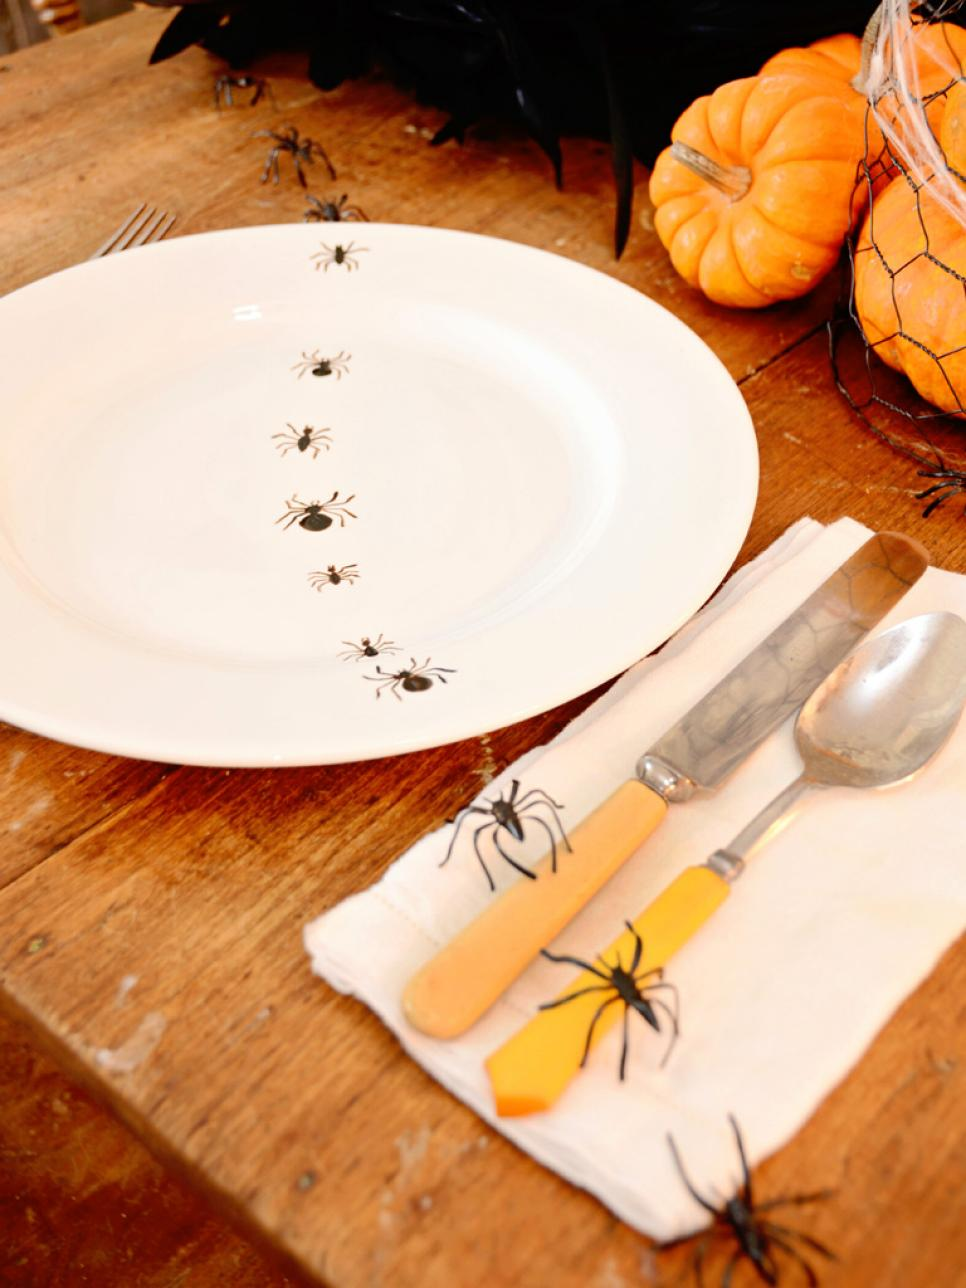 15 Great Ideas for Halloween